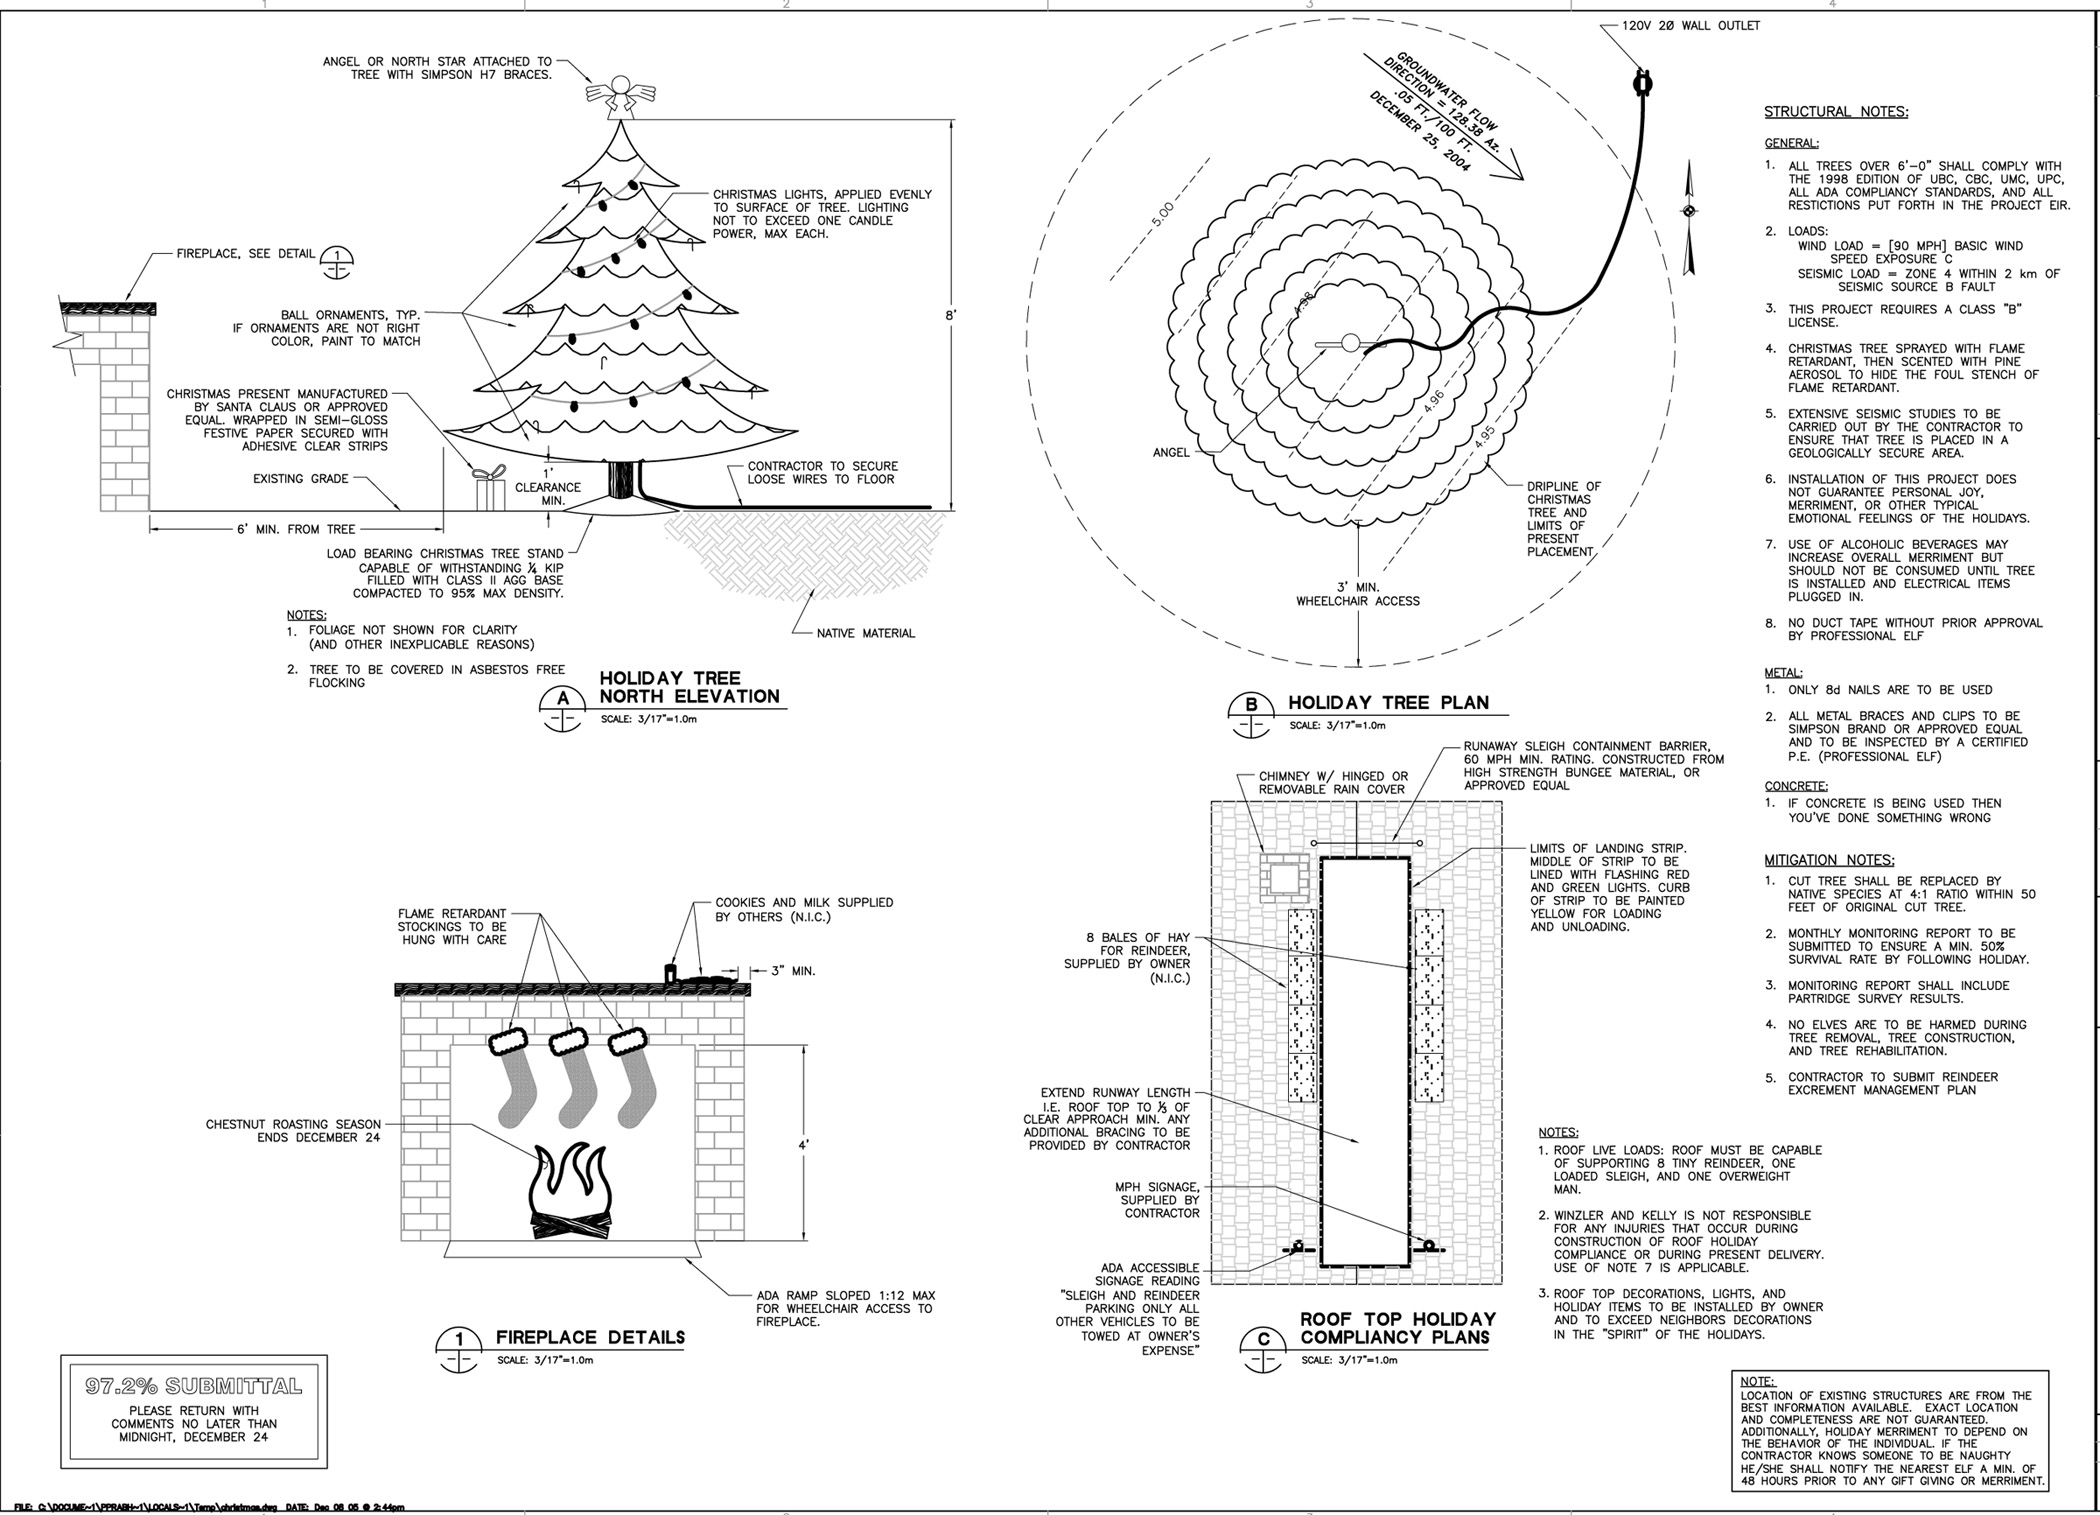 How engineers prepare for Christmas : funny